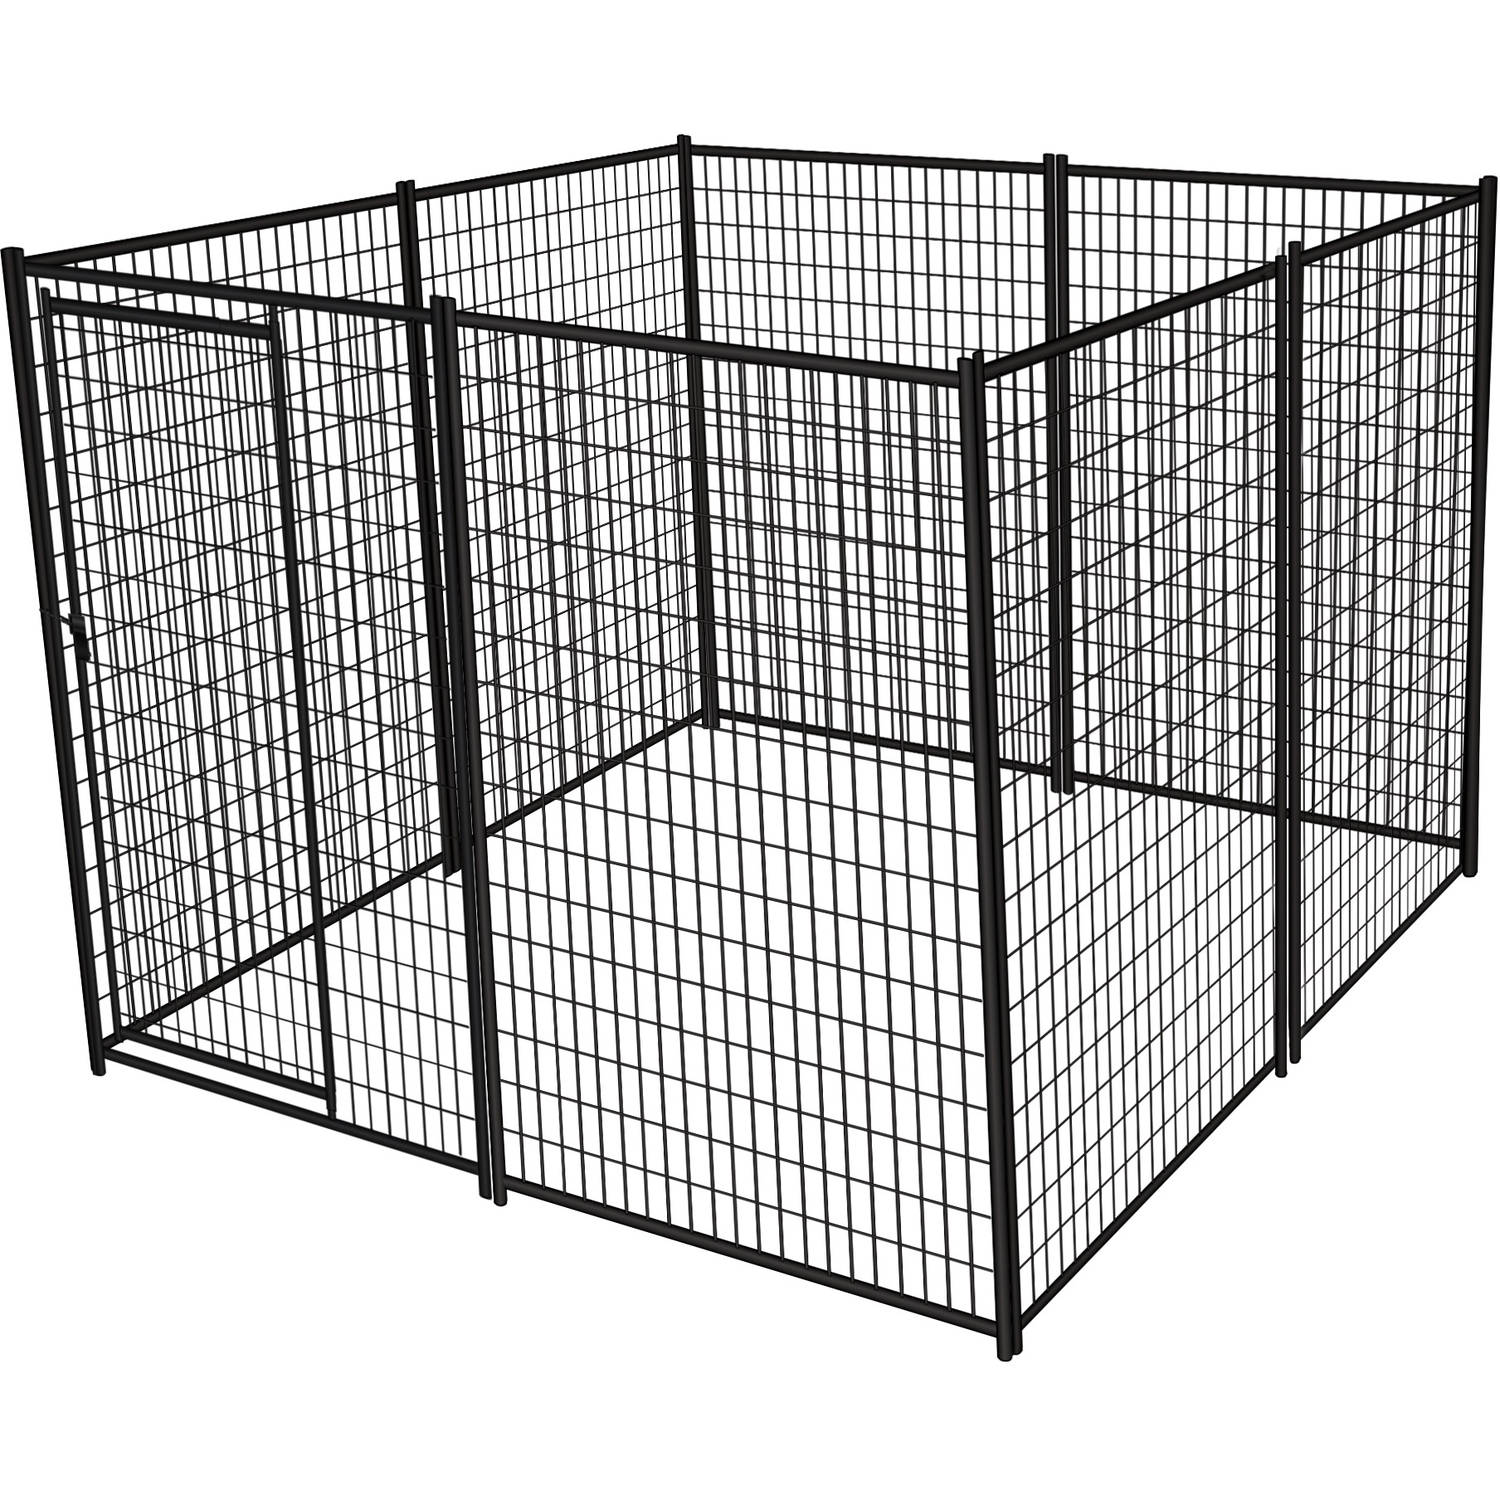 Lucky Dog Heavy Duty Dog Kennel, 6' H x 10' W x 10' L